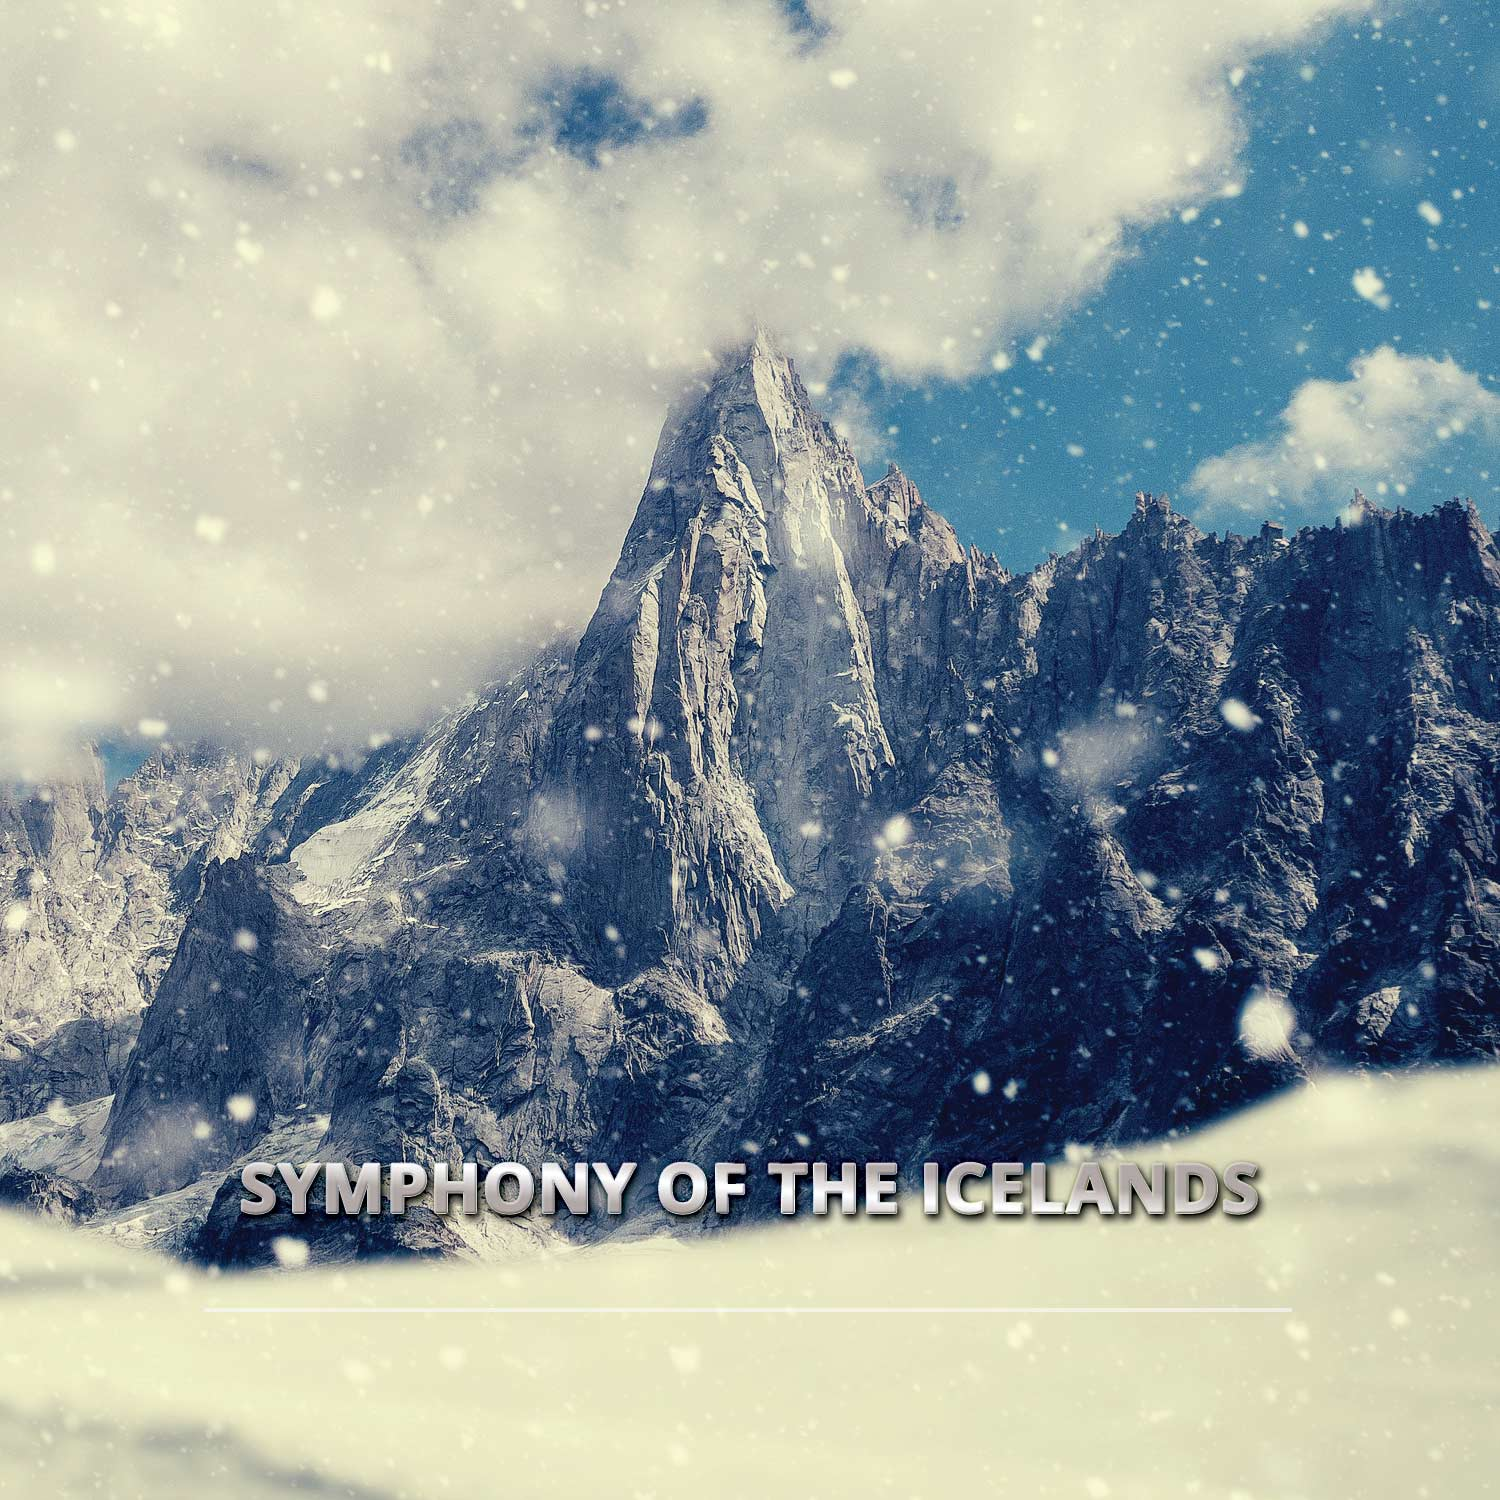 Symphony of the Icelands